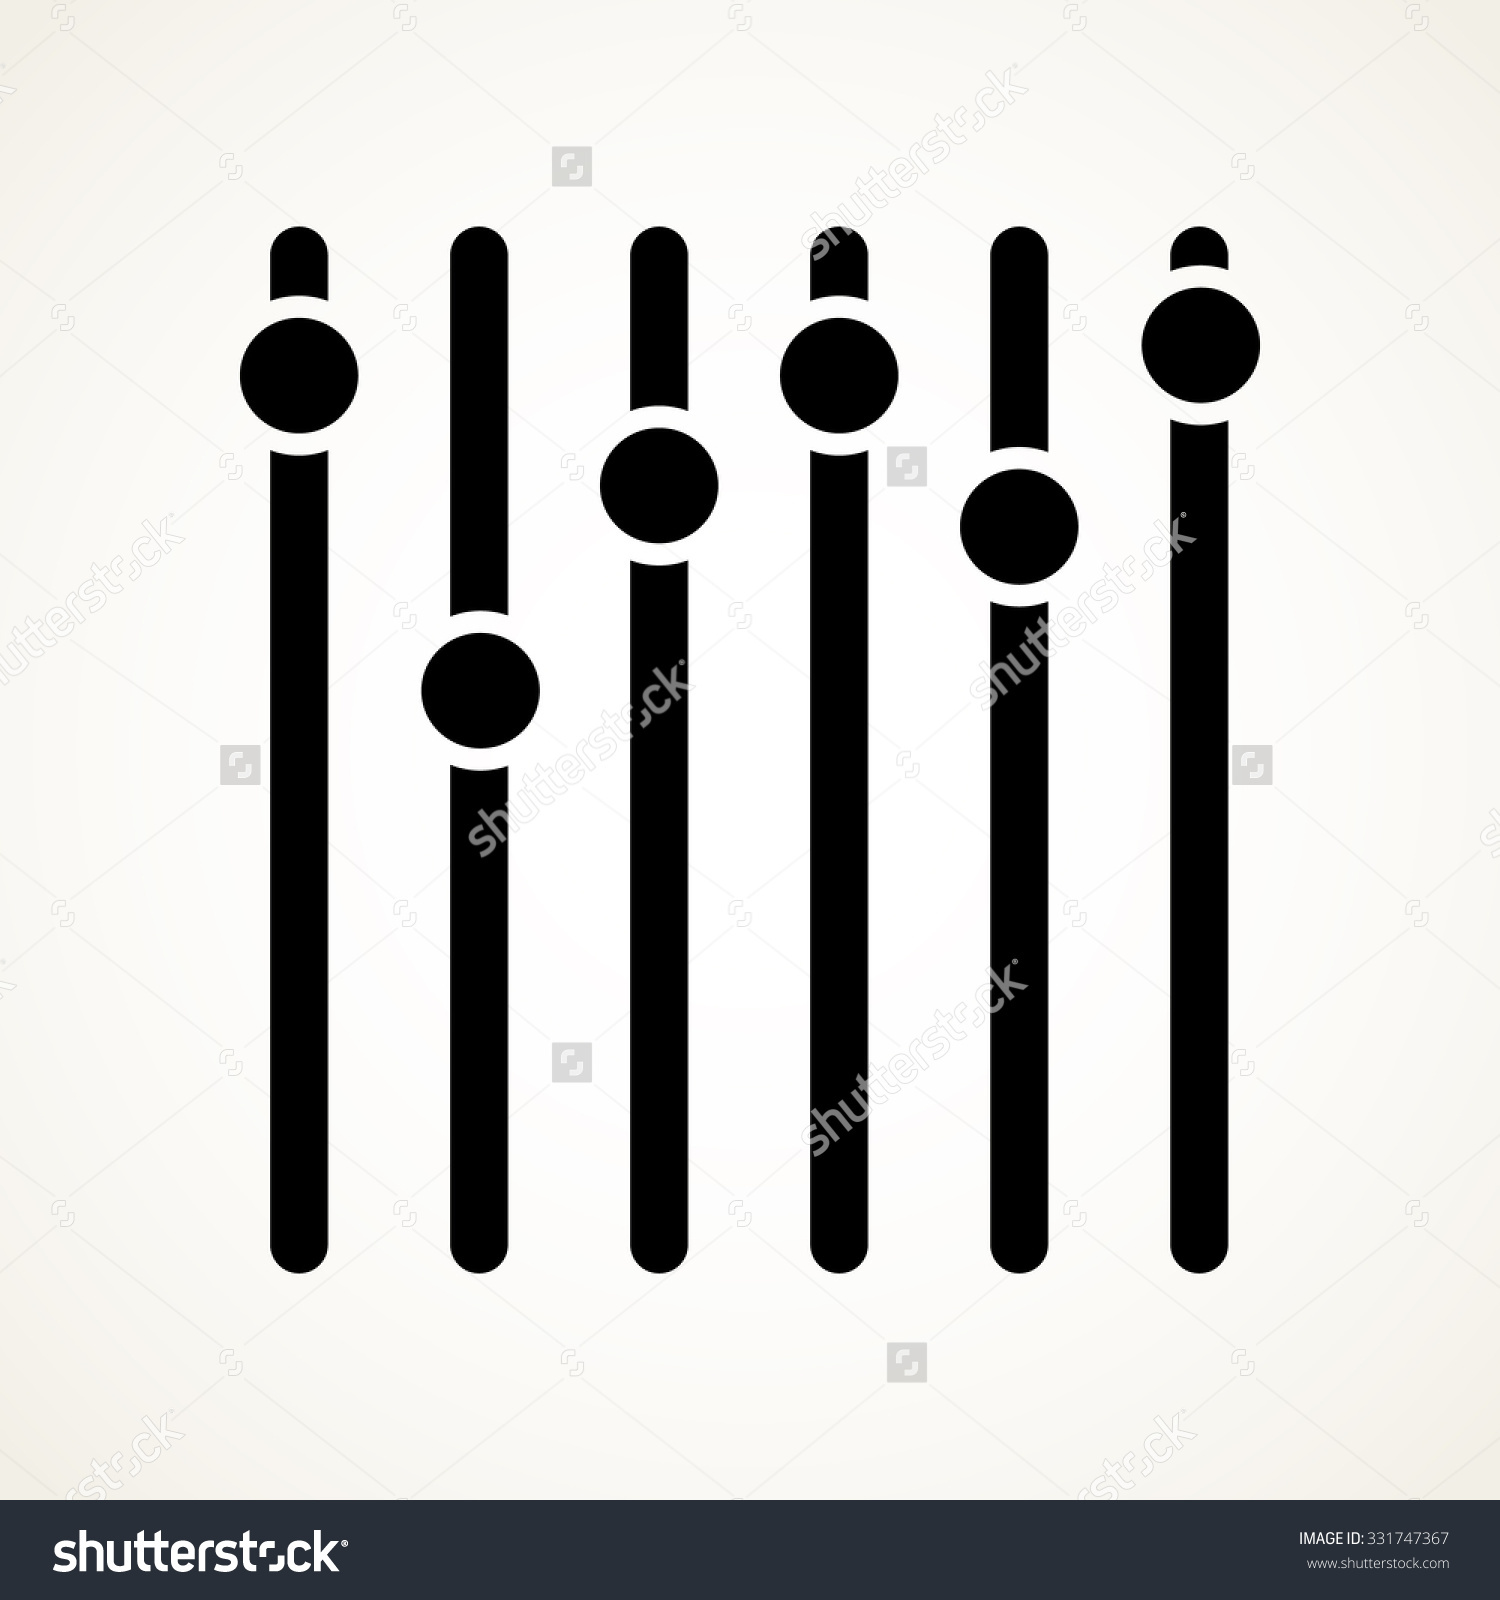 Vertical Sliders Faders Potentiometers Vector Symbol Stock Vector.